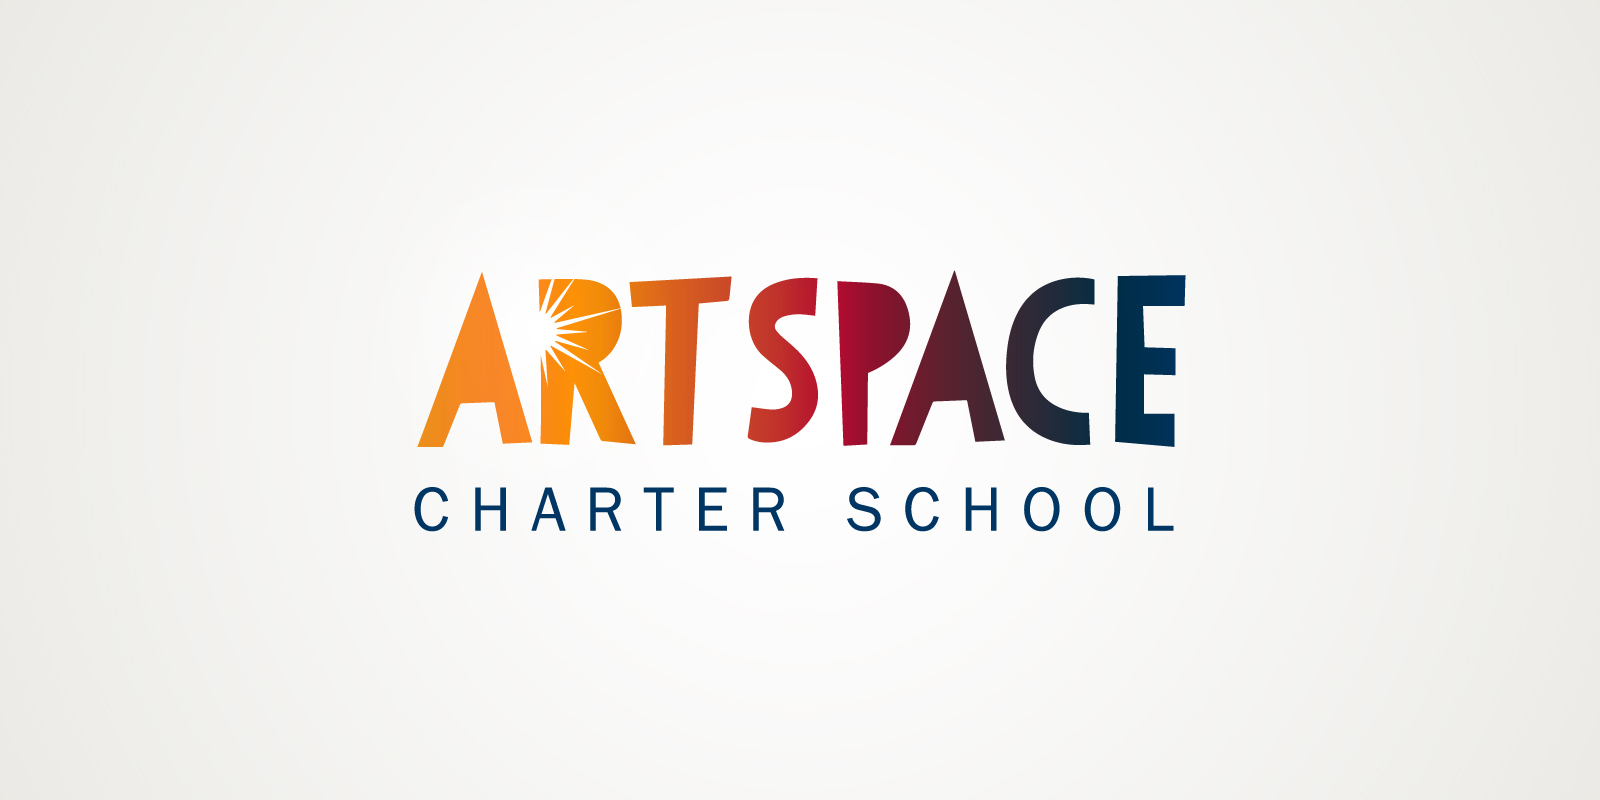 ArtSpace Charter School logo with sunburst gradient fill and spark graphic combined with a playful cut-paper typeface.